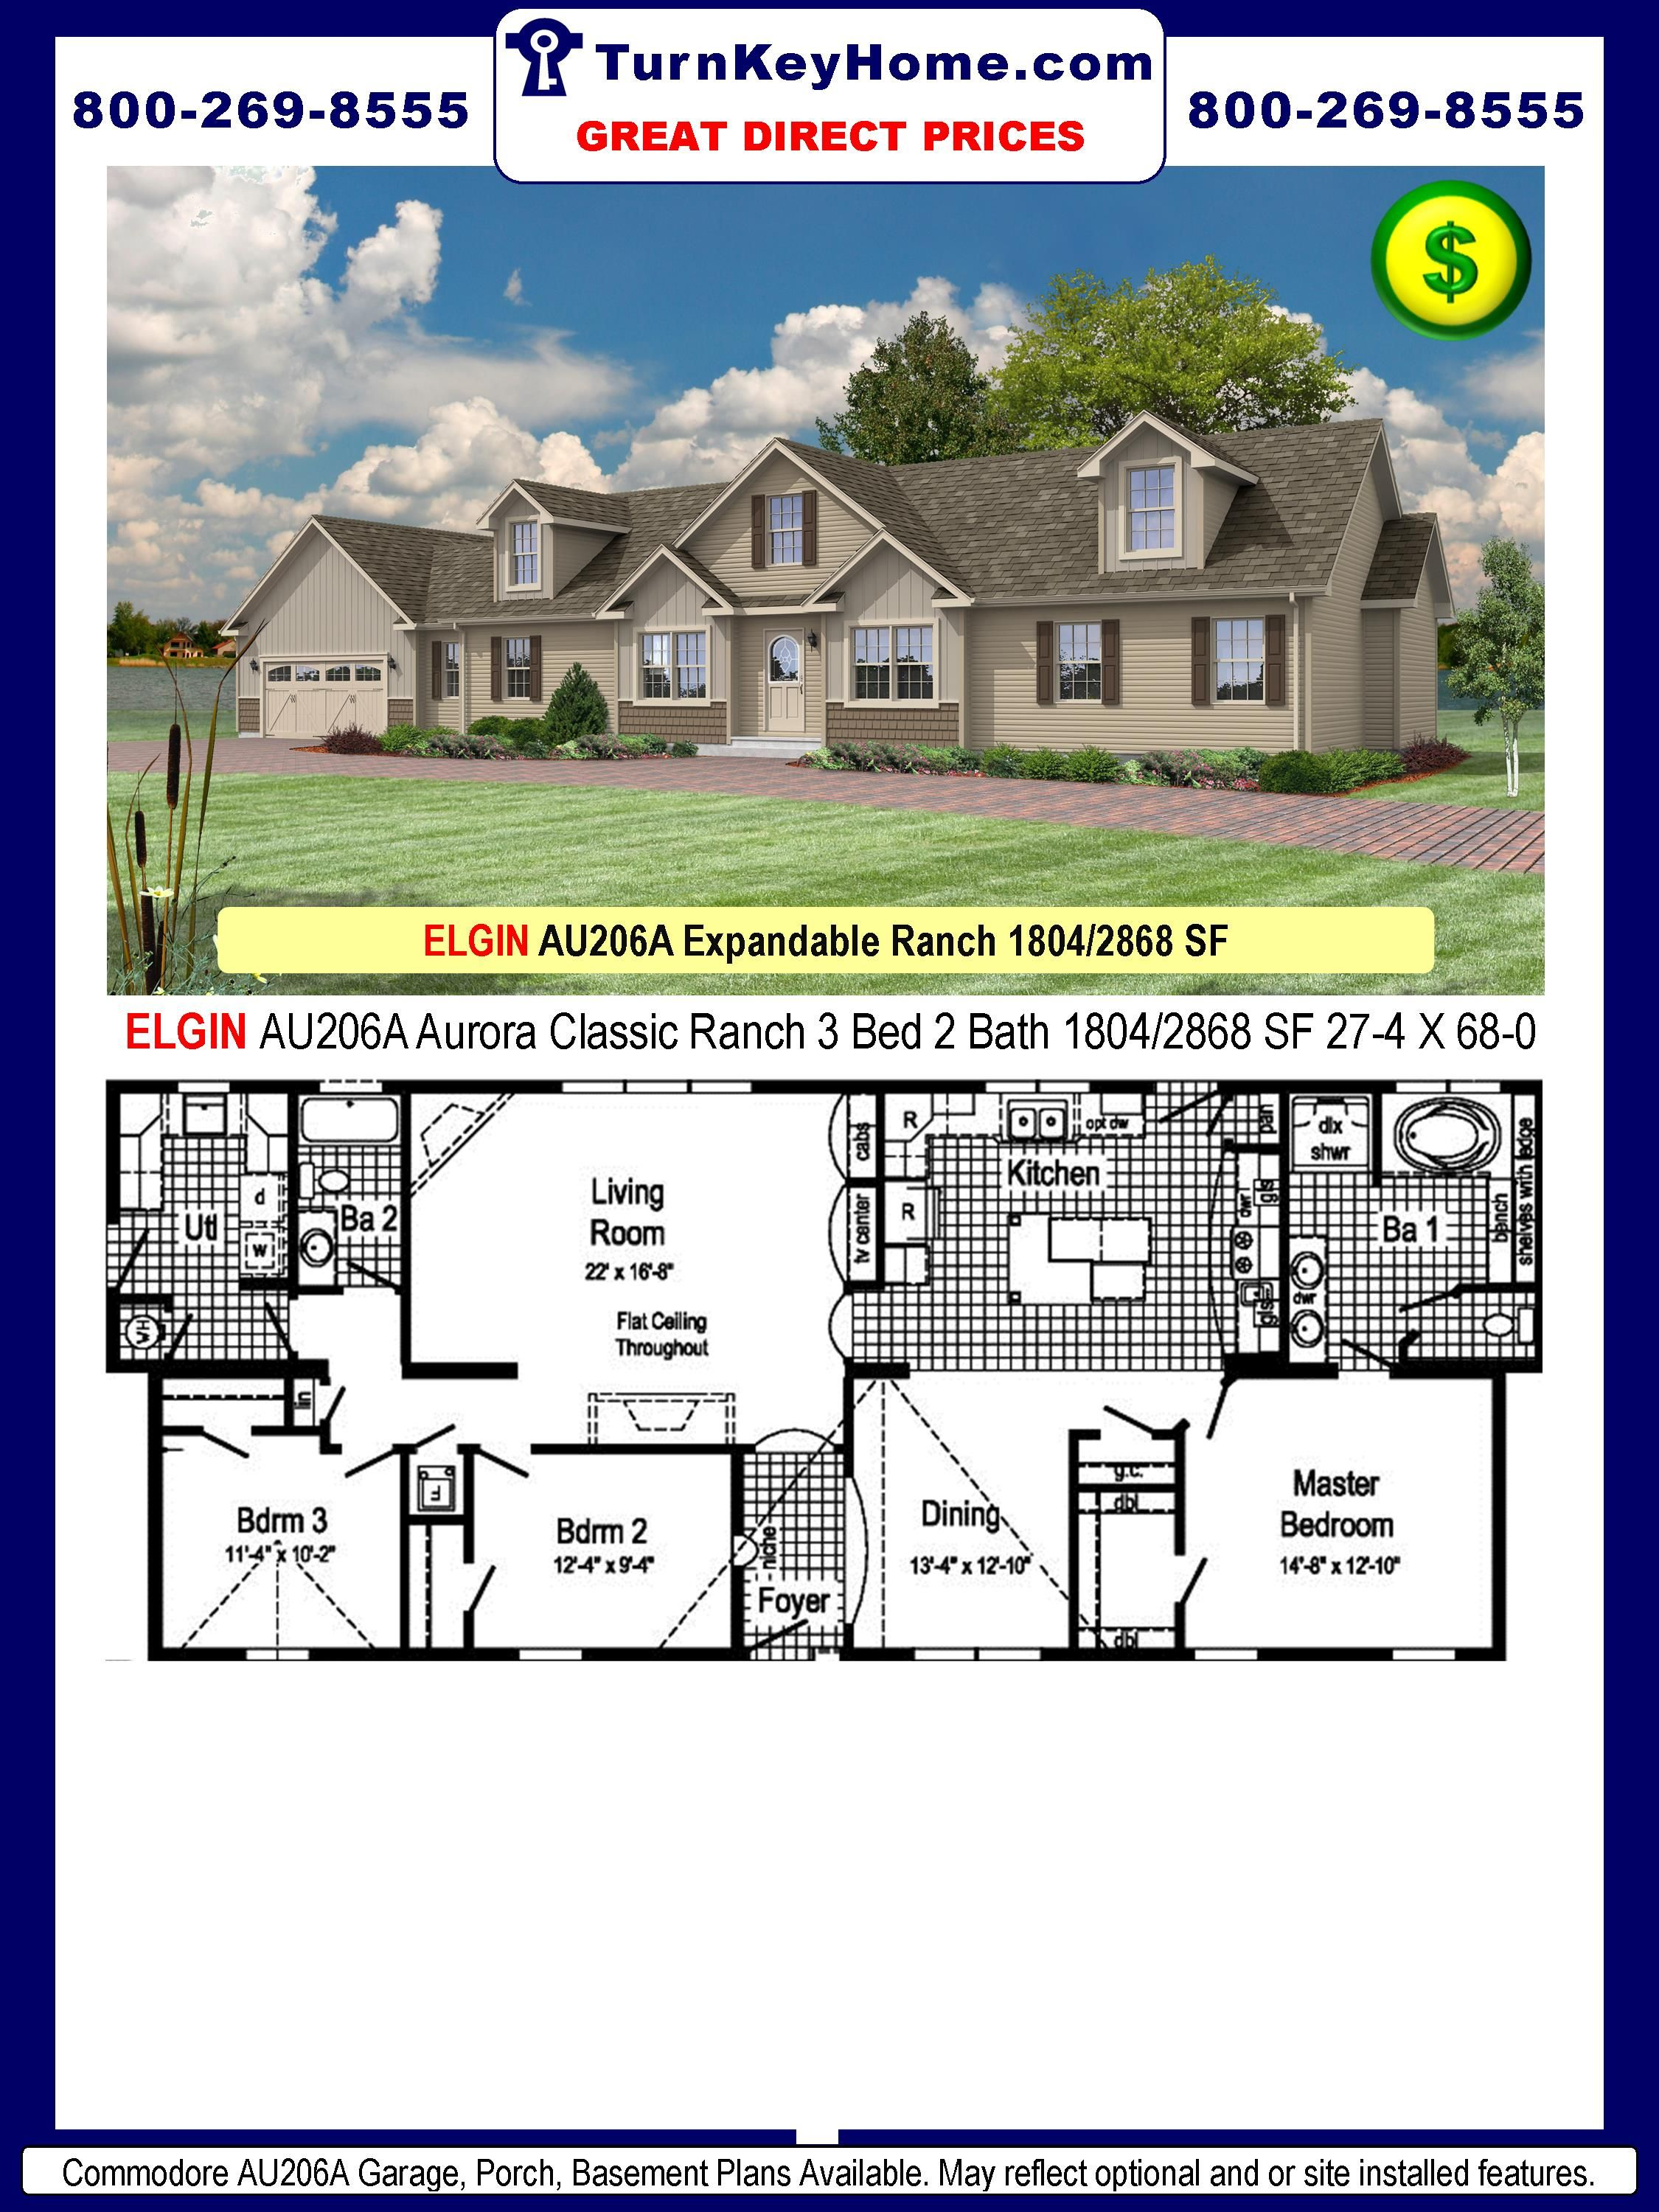 Elgin Au206a 3 Bed 2 Bath Ranch Plan 1804 Sf Commodore Homes Aurora Classic Series Direct Pr Modular Home Prices Manufactured Home Prices House Prices